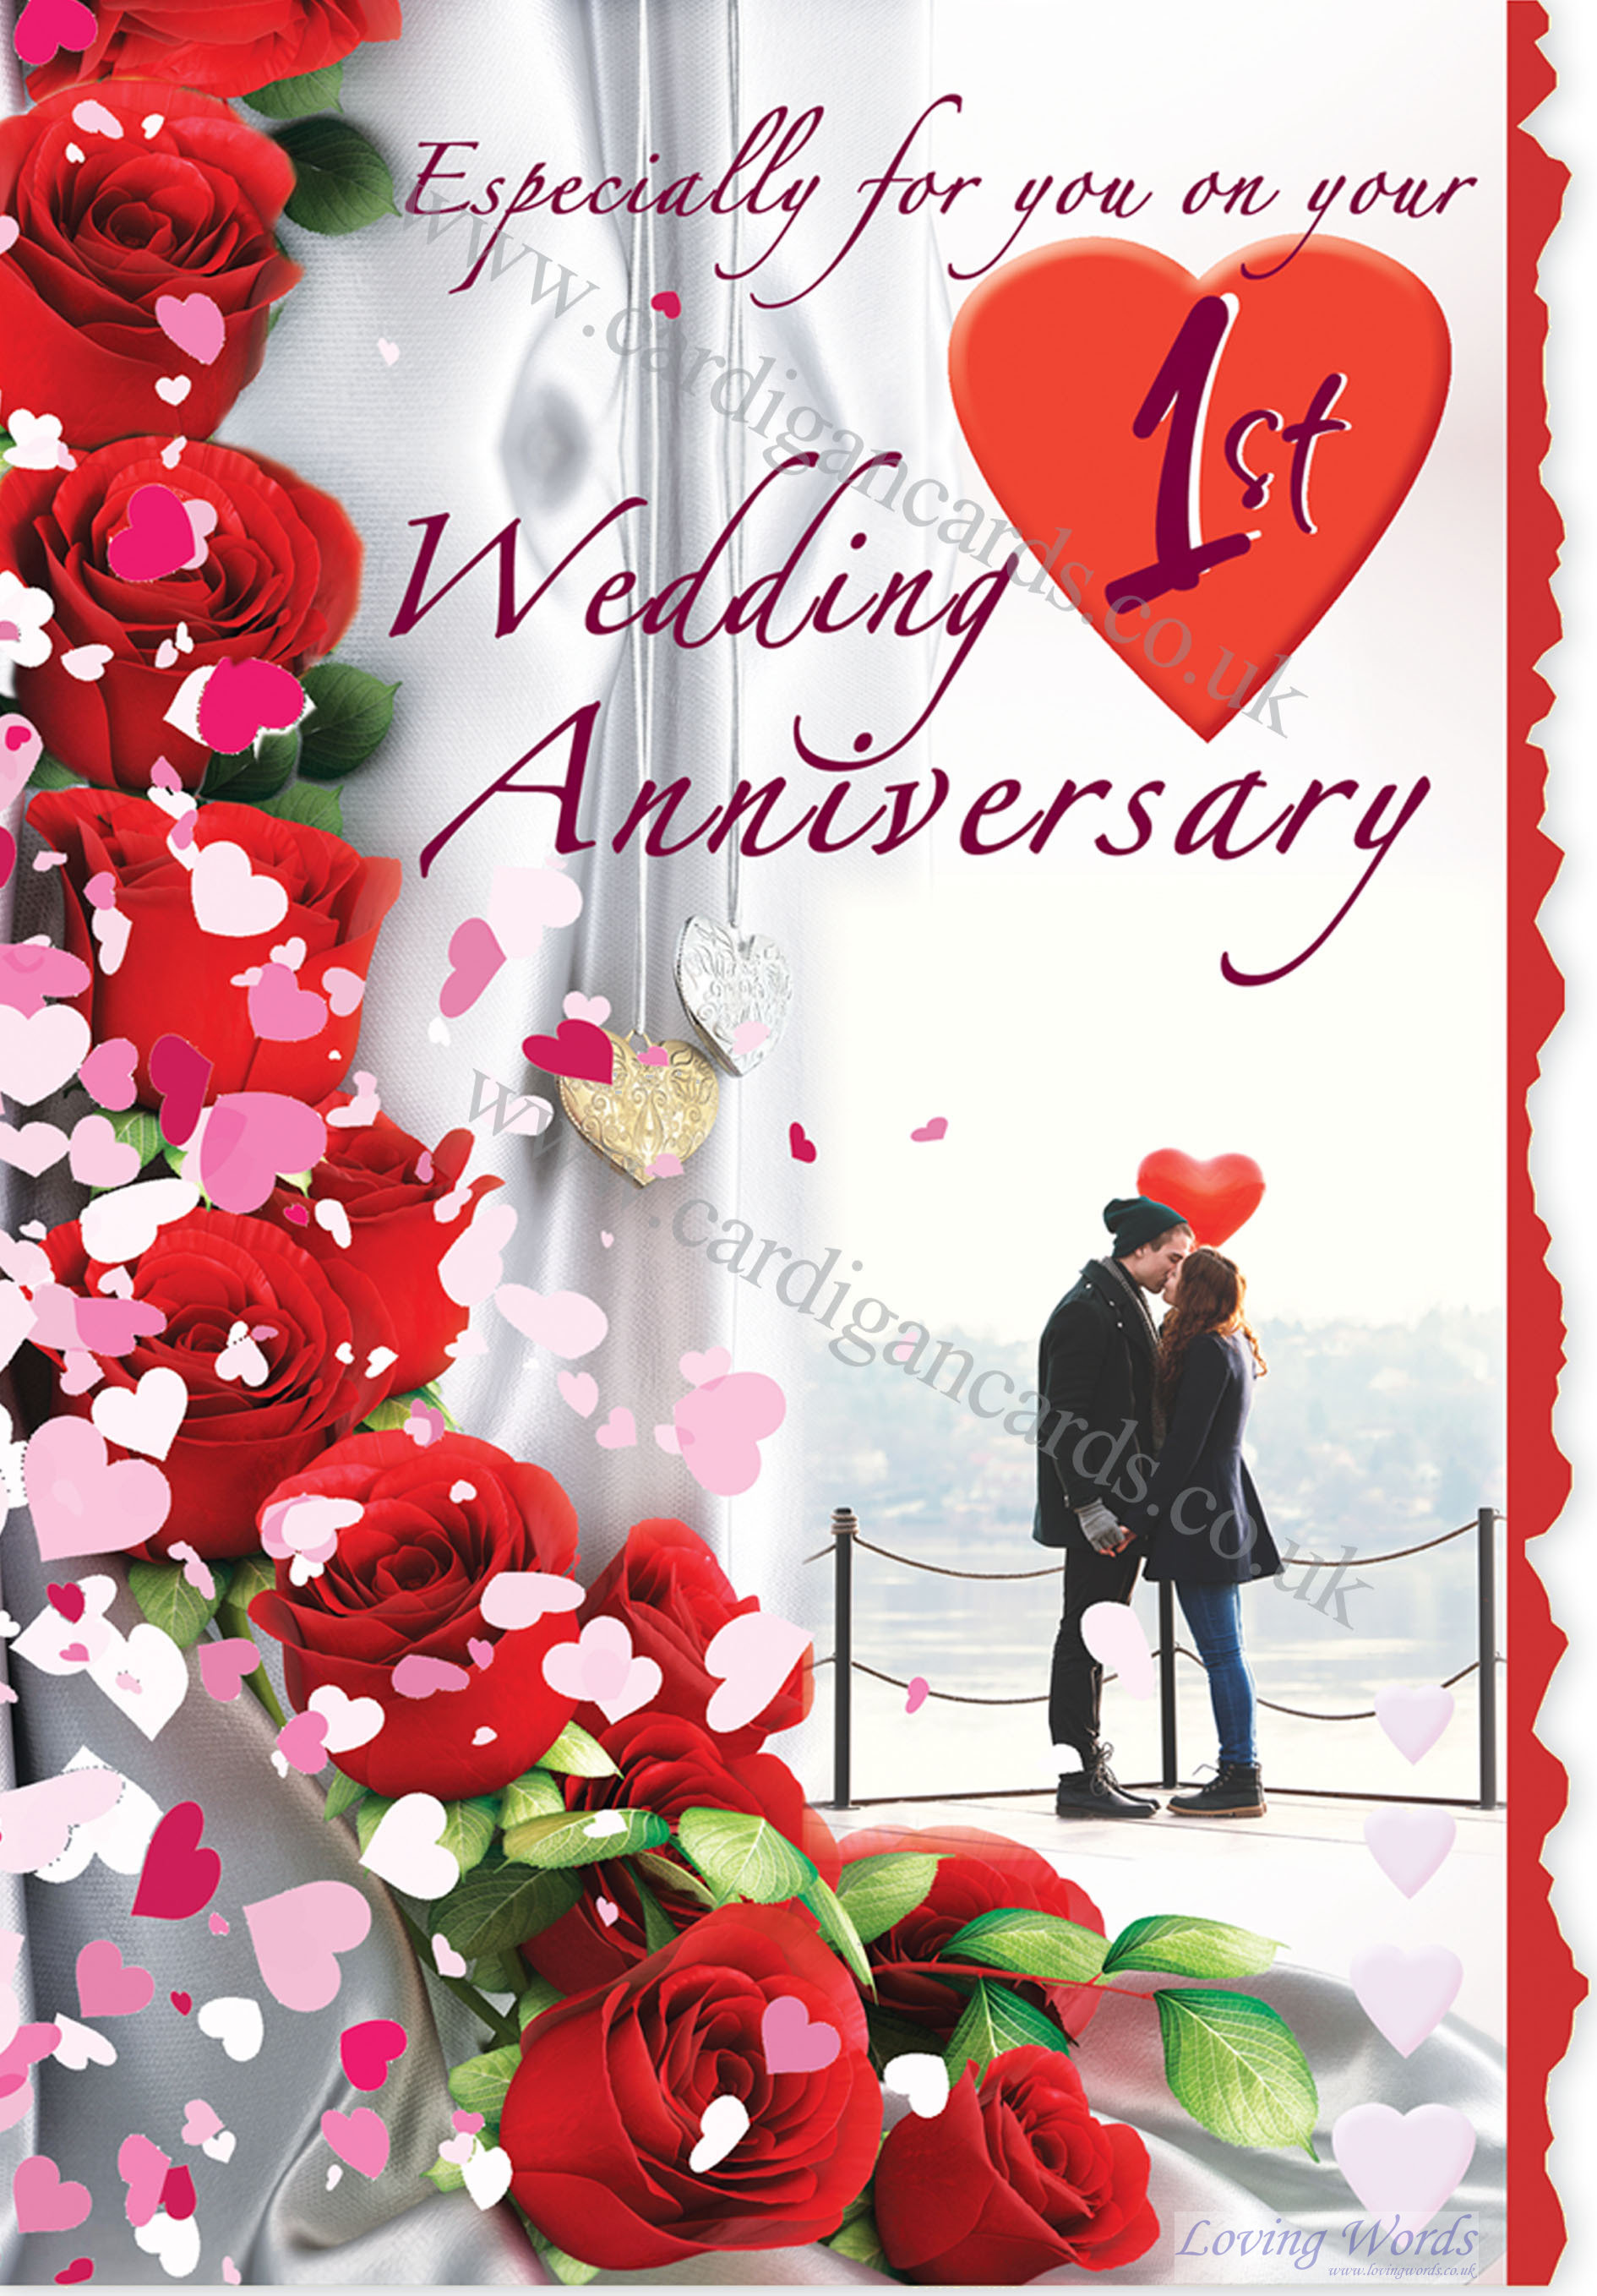 On 1st wedding anniversary greeting cards by loving words personalised greeting cards m4hsunfo